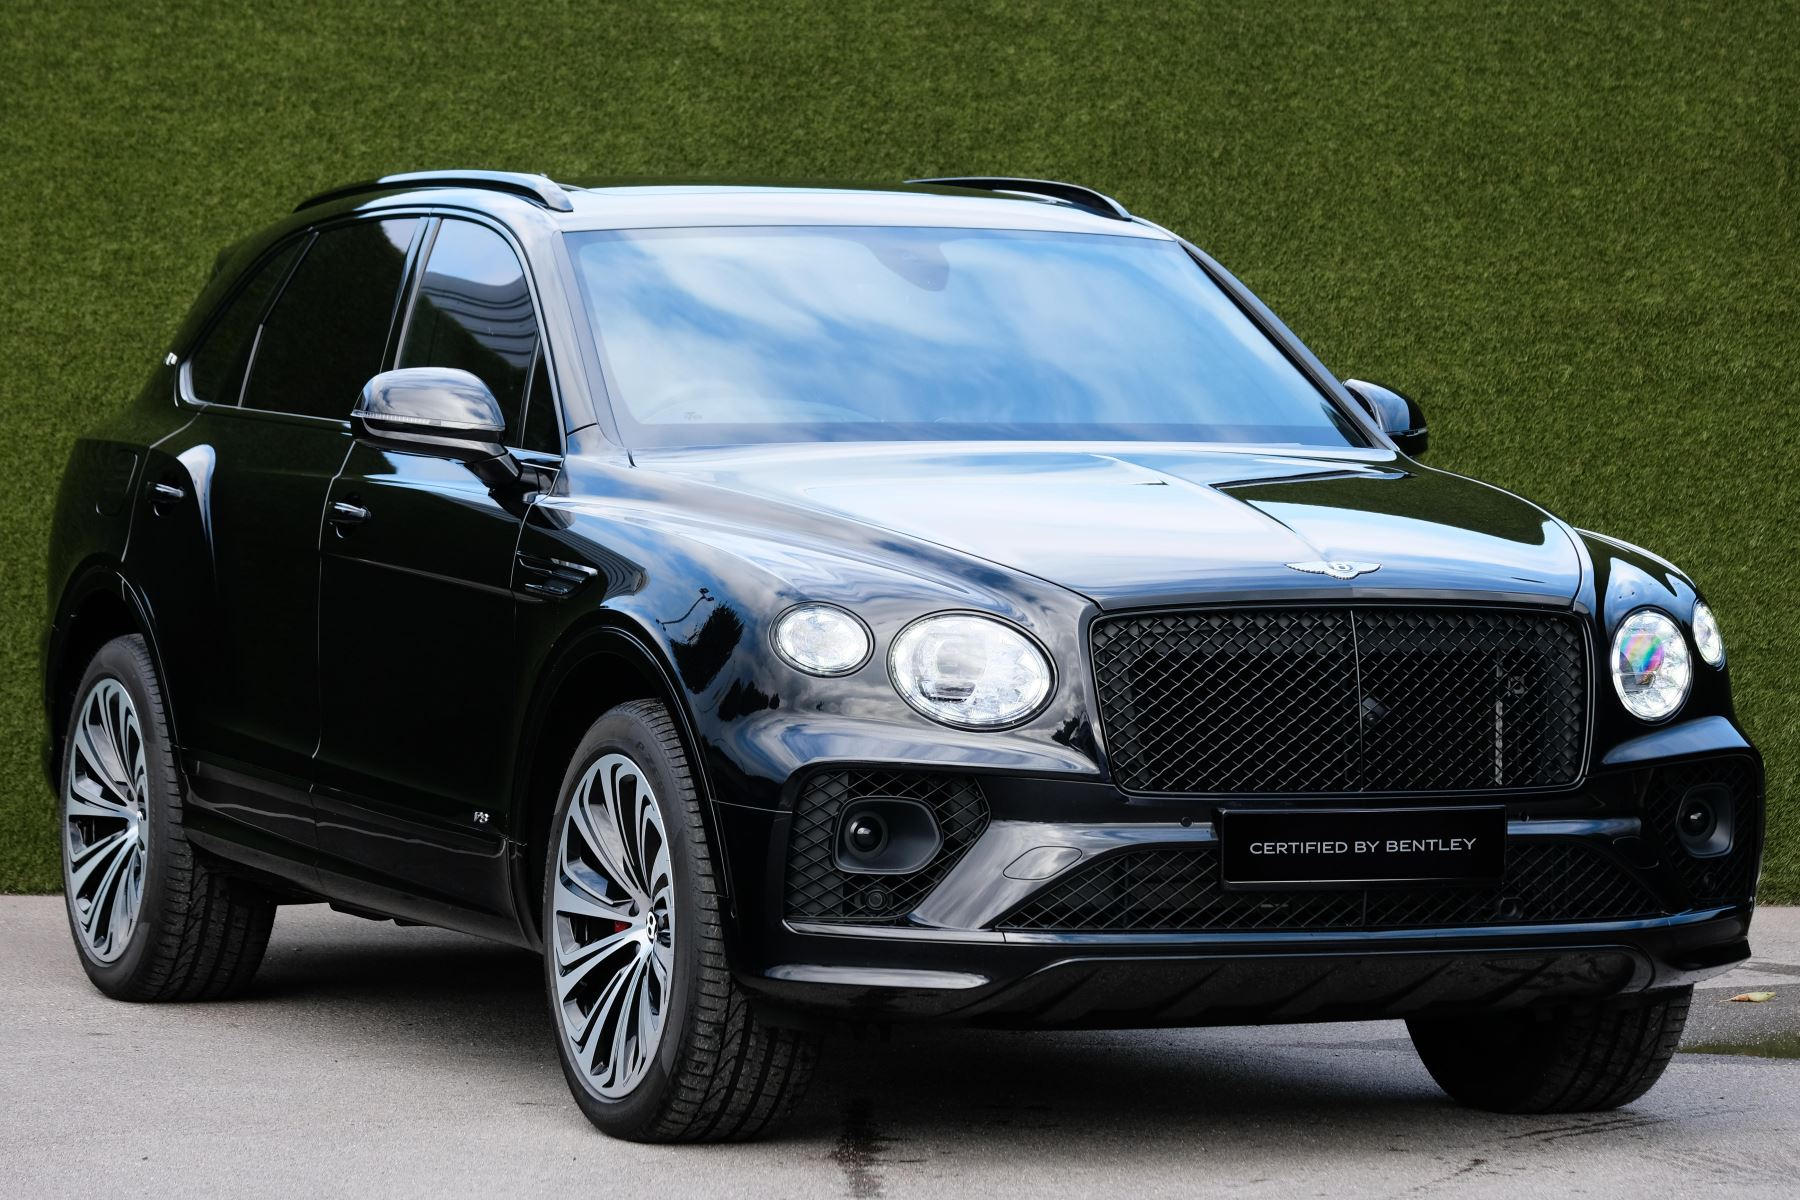 Bentley Bentayga 4.0 V8 - First Edition - Mulliner Driving Specification Automatic 5 door Estate